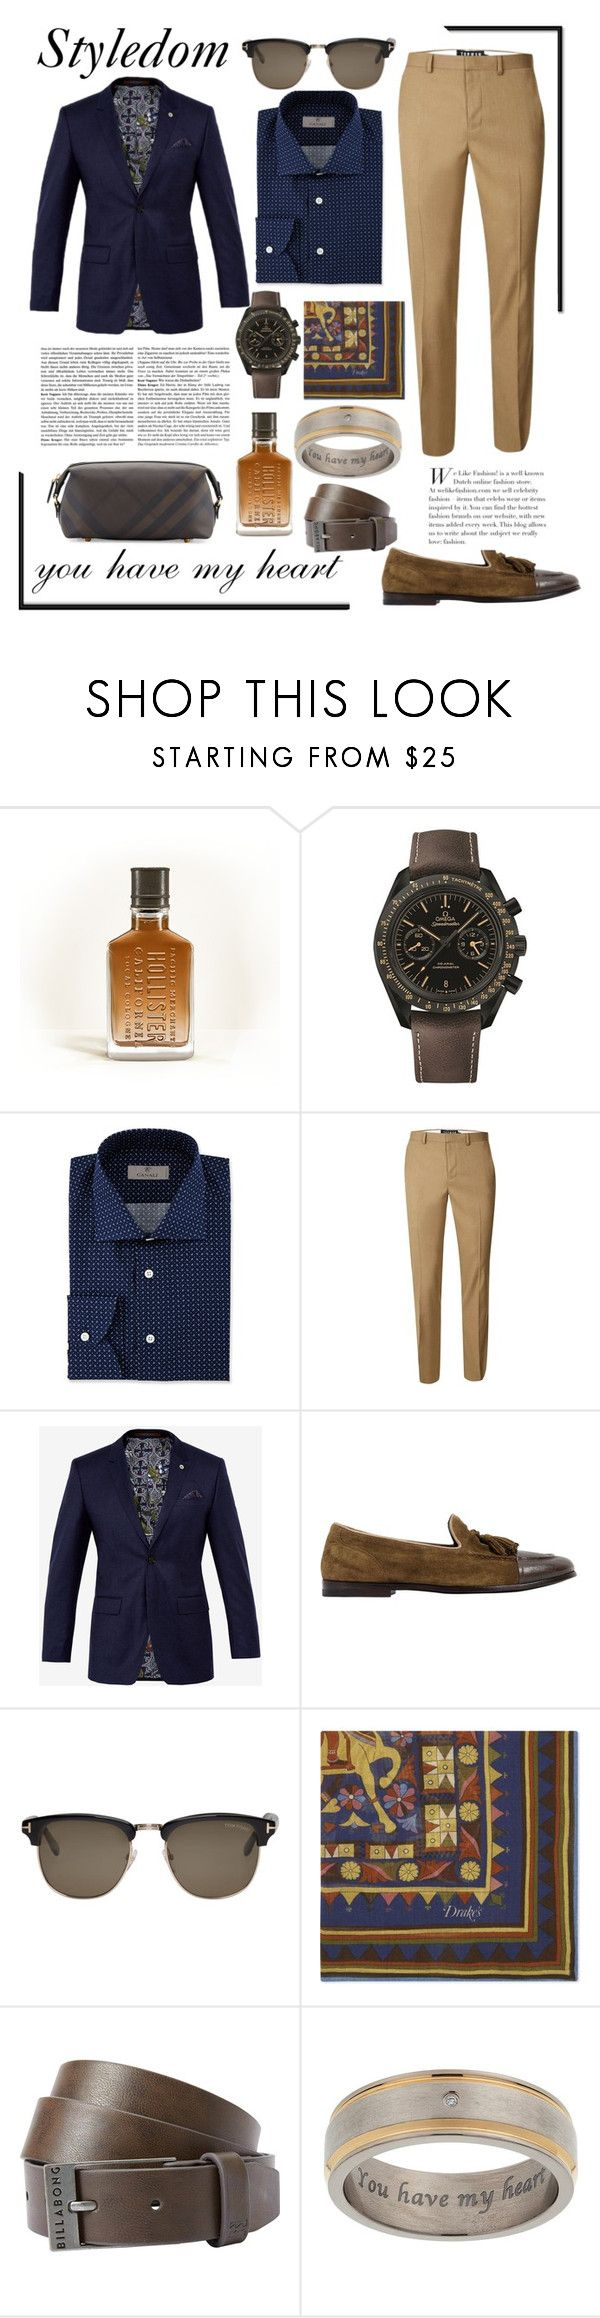 """Mr. Stylish"" by khouryolivia ❤ liked on Polyvore featuring Hollister Co., OMEGA, Canali, Topman, Ted Baker, Alberto Fasciani, Tom Ford, Drakes London, Billabong and Burberry"